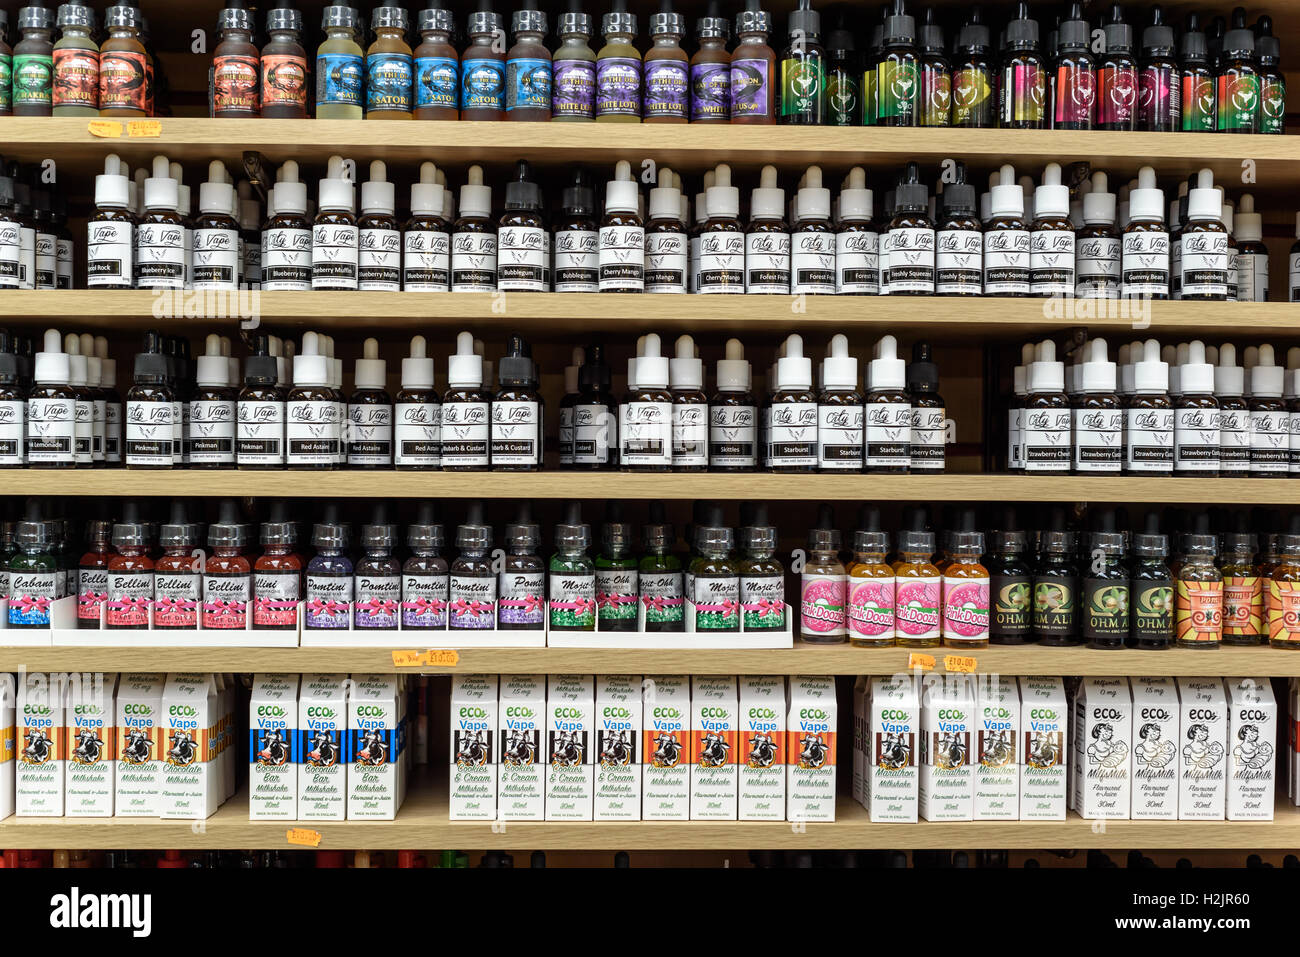 Rows of bottles of liquids of different flavors for vaping and vapors on display in a shop - Stock Image